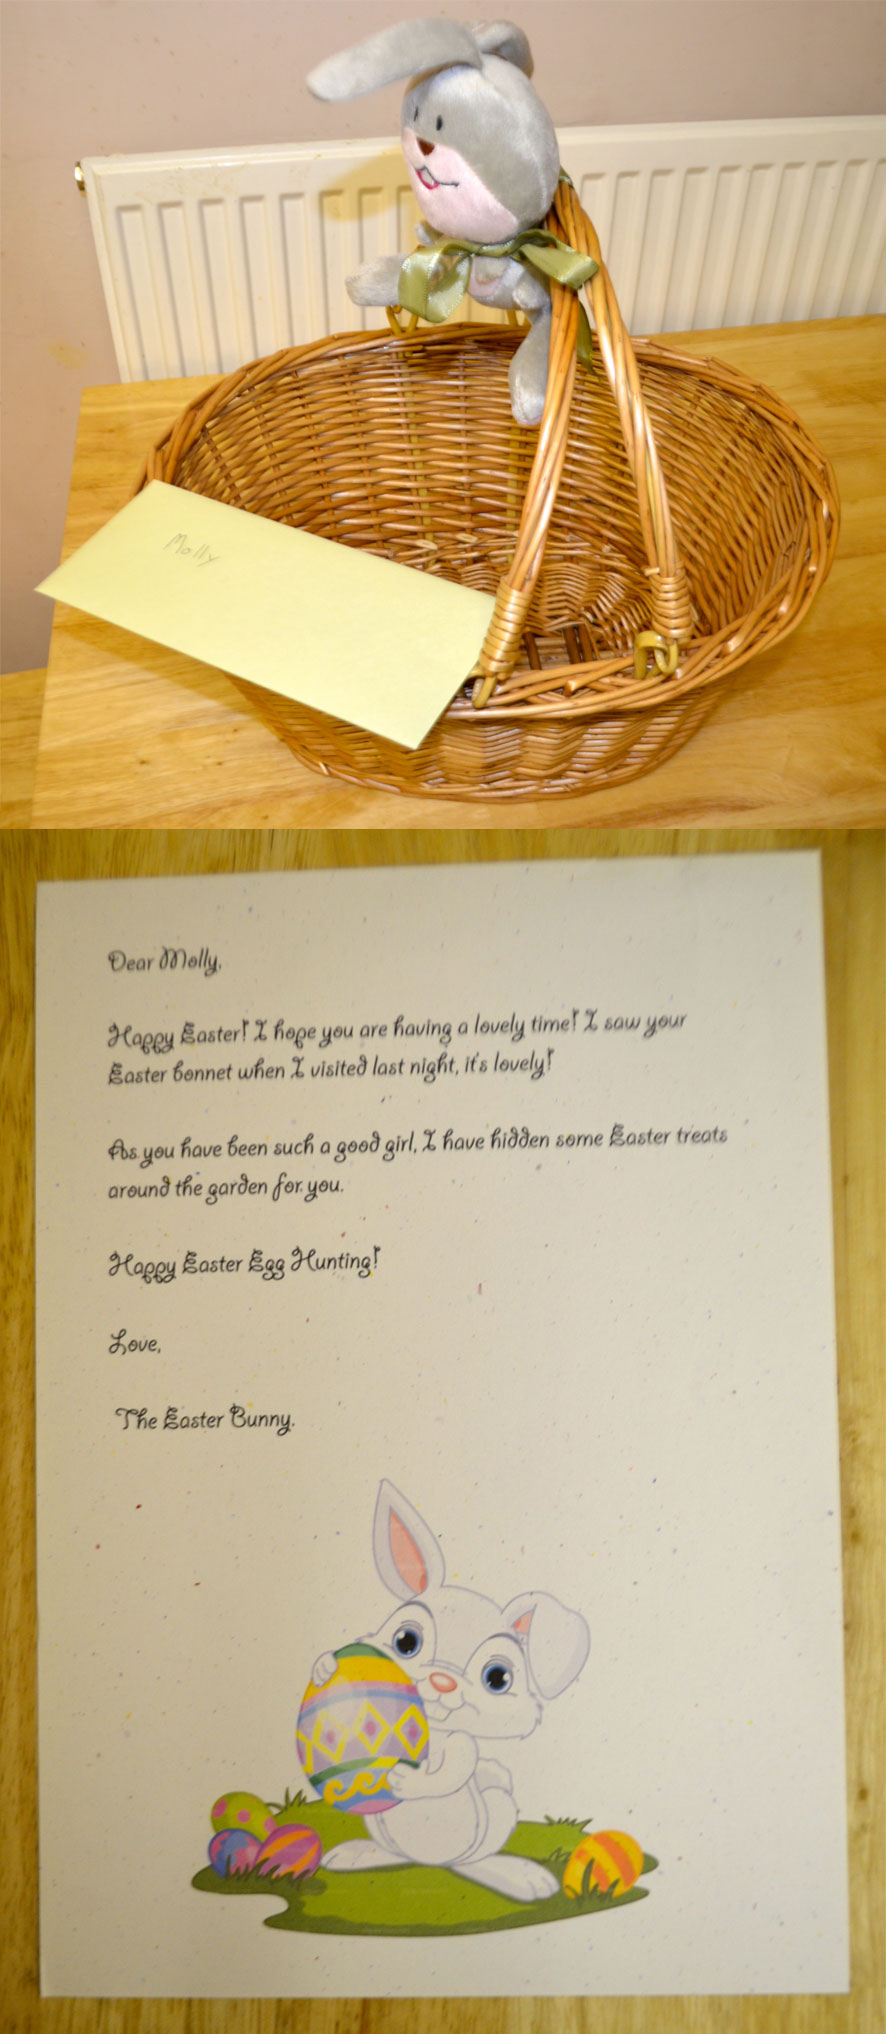 Letter-from-the-Easter-Bunny